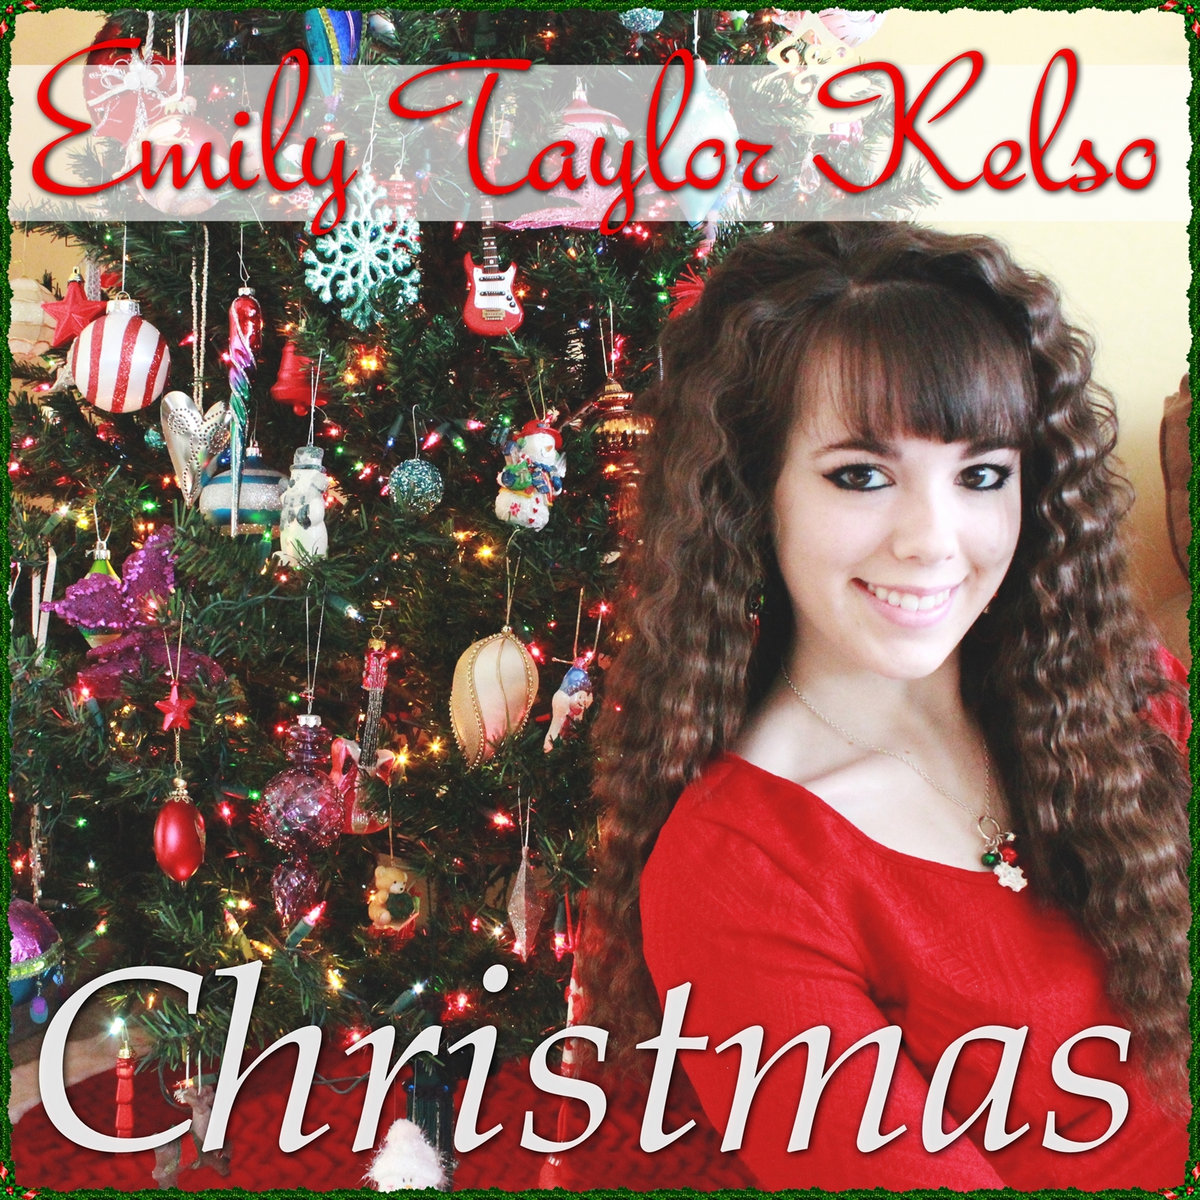 christmas is the time to say i love you from christmas ep by emily taylor kelso - Christmas Is The Time To Say I Love You